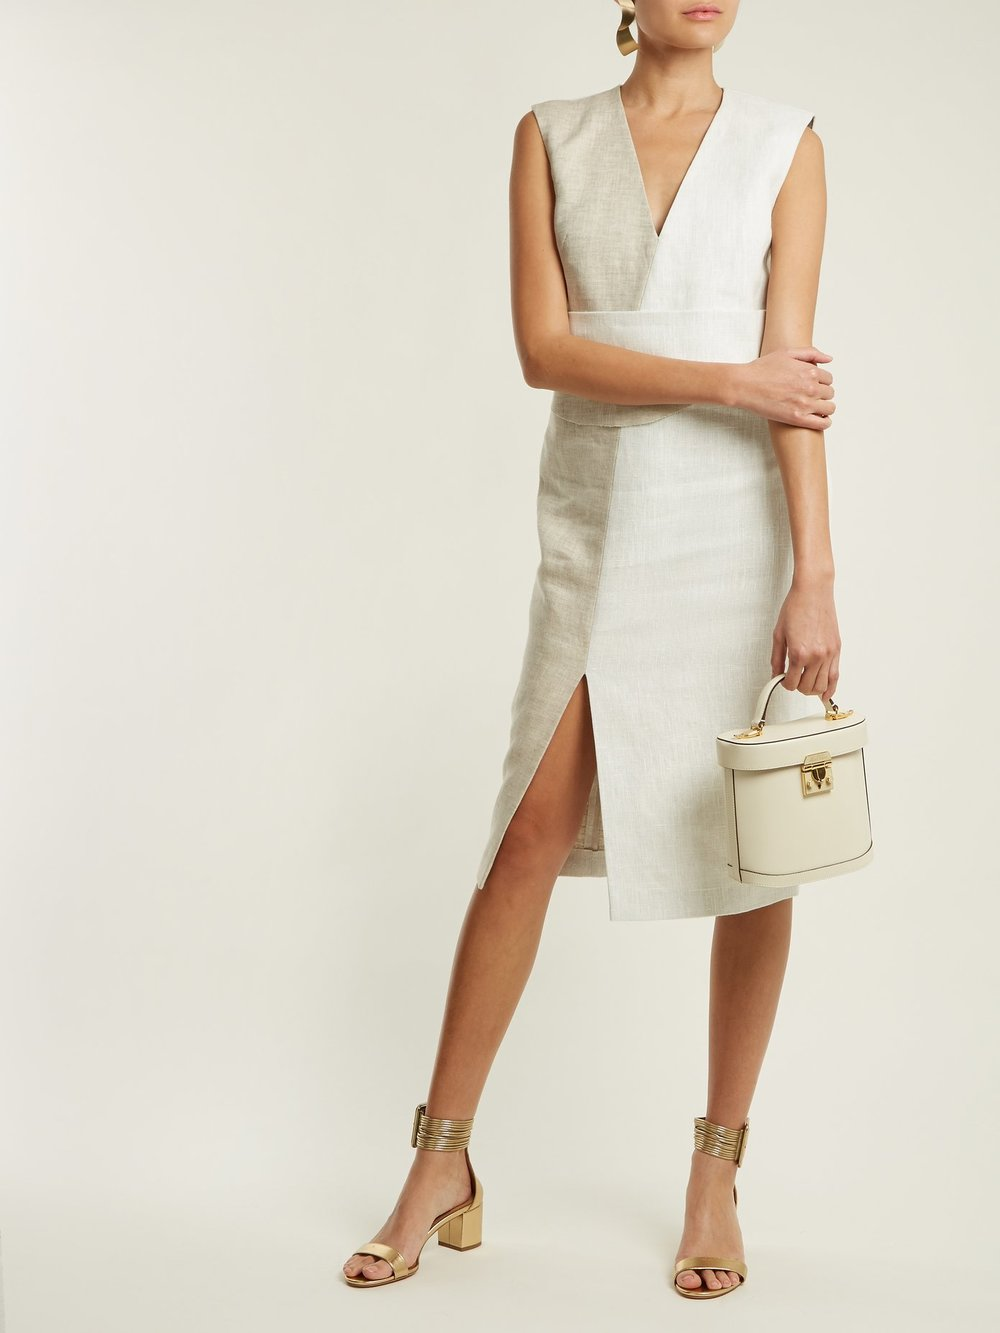 What Should Ladies Wear for a Jacket and Tie Dress Code Wedding.jpg